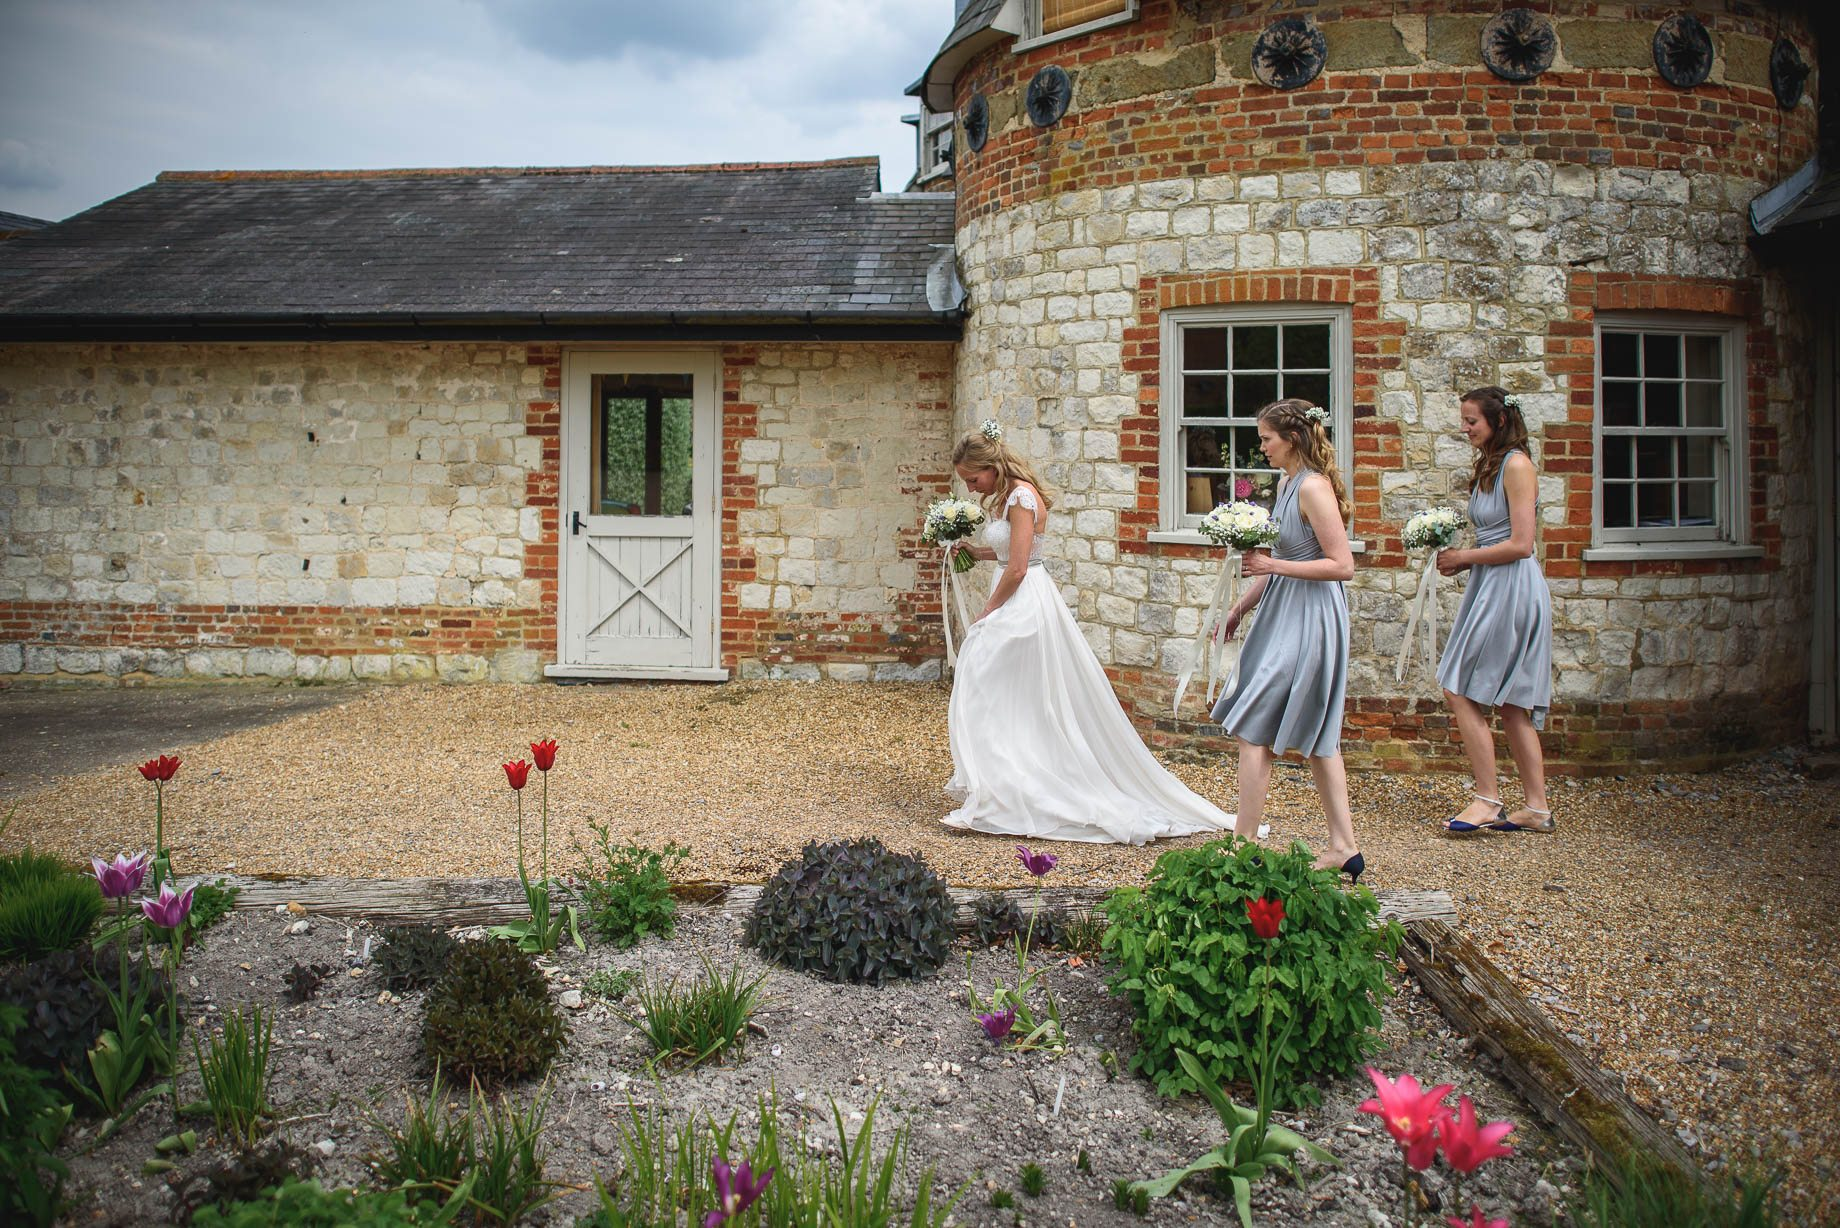 Bury Court Barn wedding photography by Guy Collier - Heather and Pat (31 of 170)